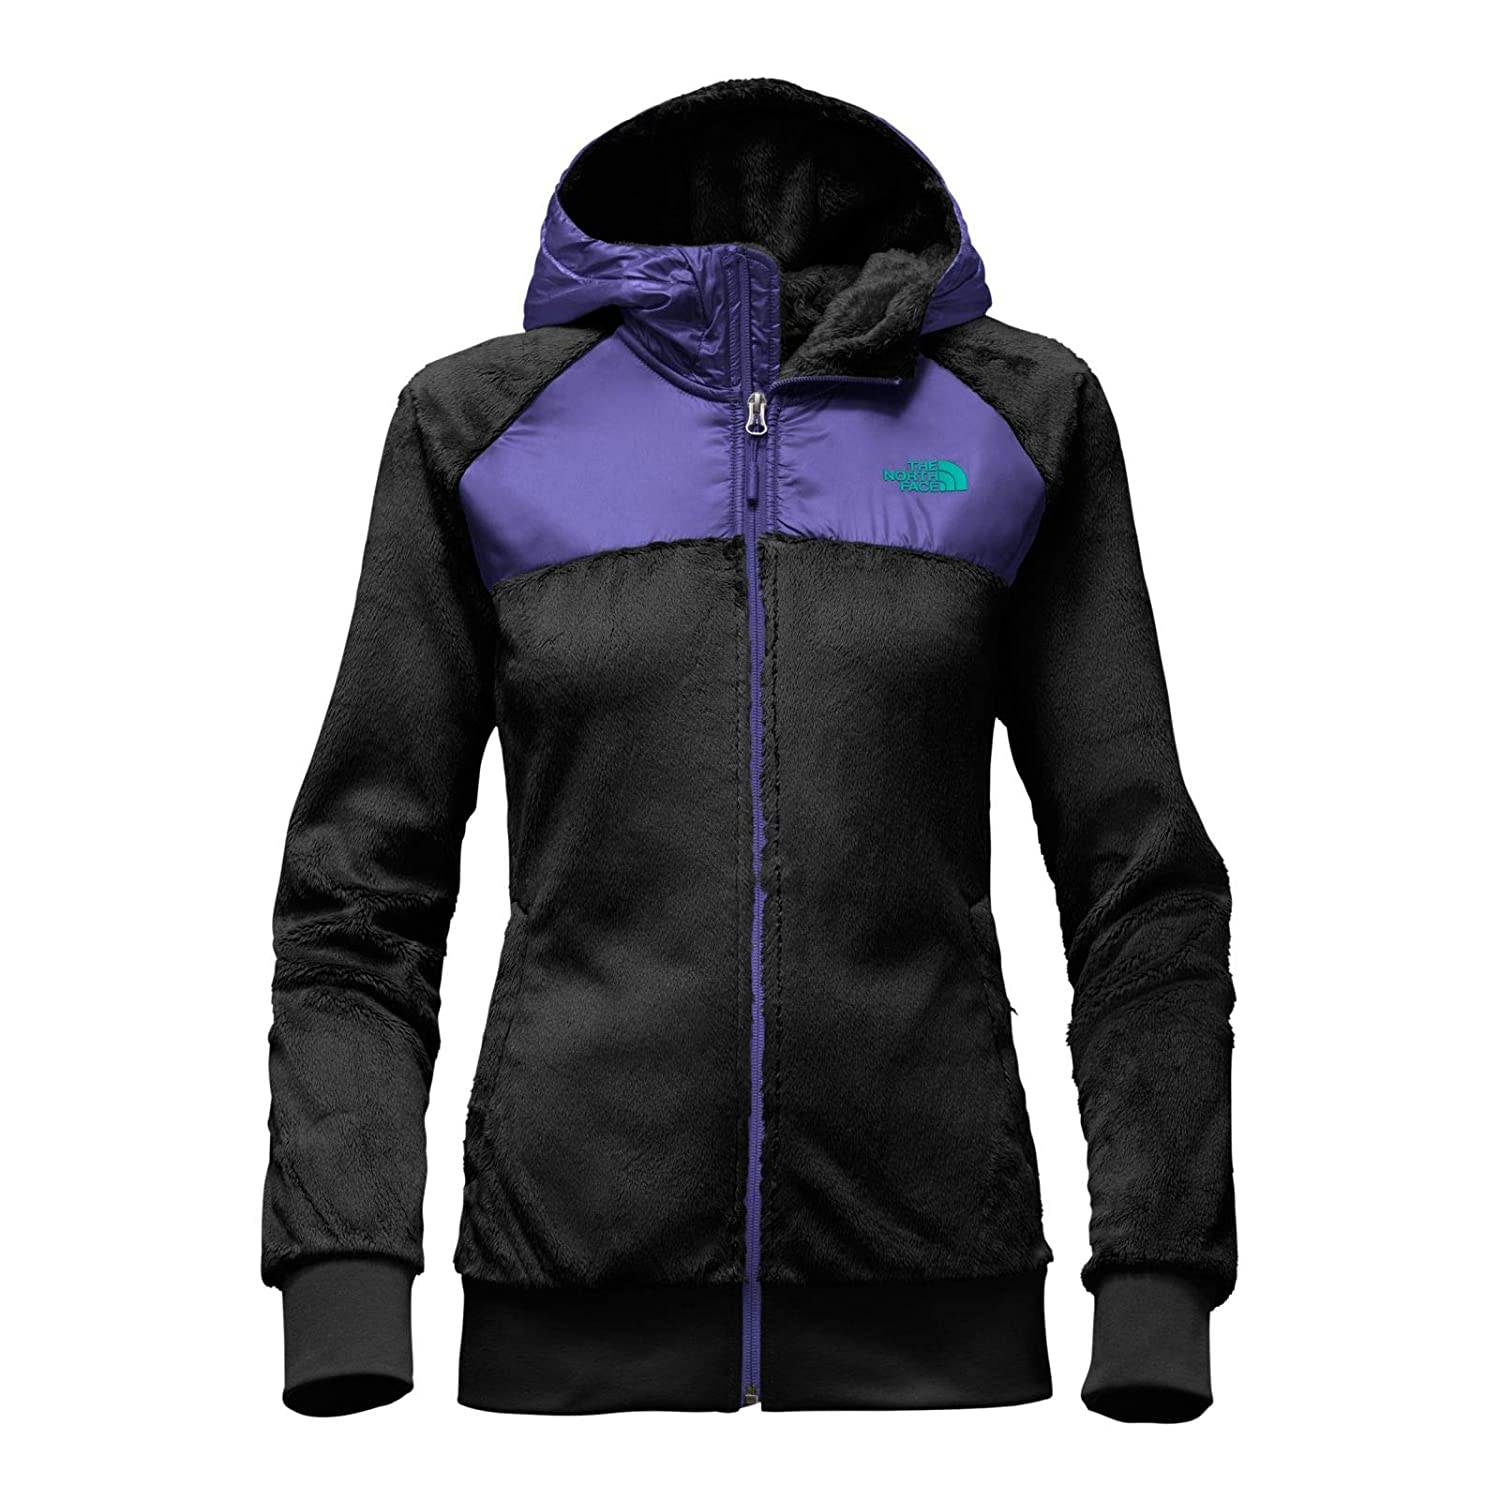 1b9a21a664 Amazon.com  The North Face Women s OSO Hoodie  THE NORTH FACE  Clothing